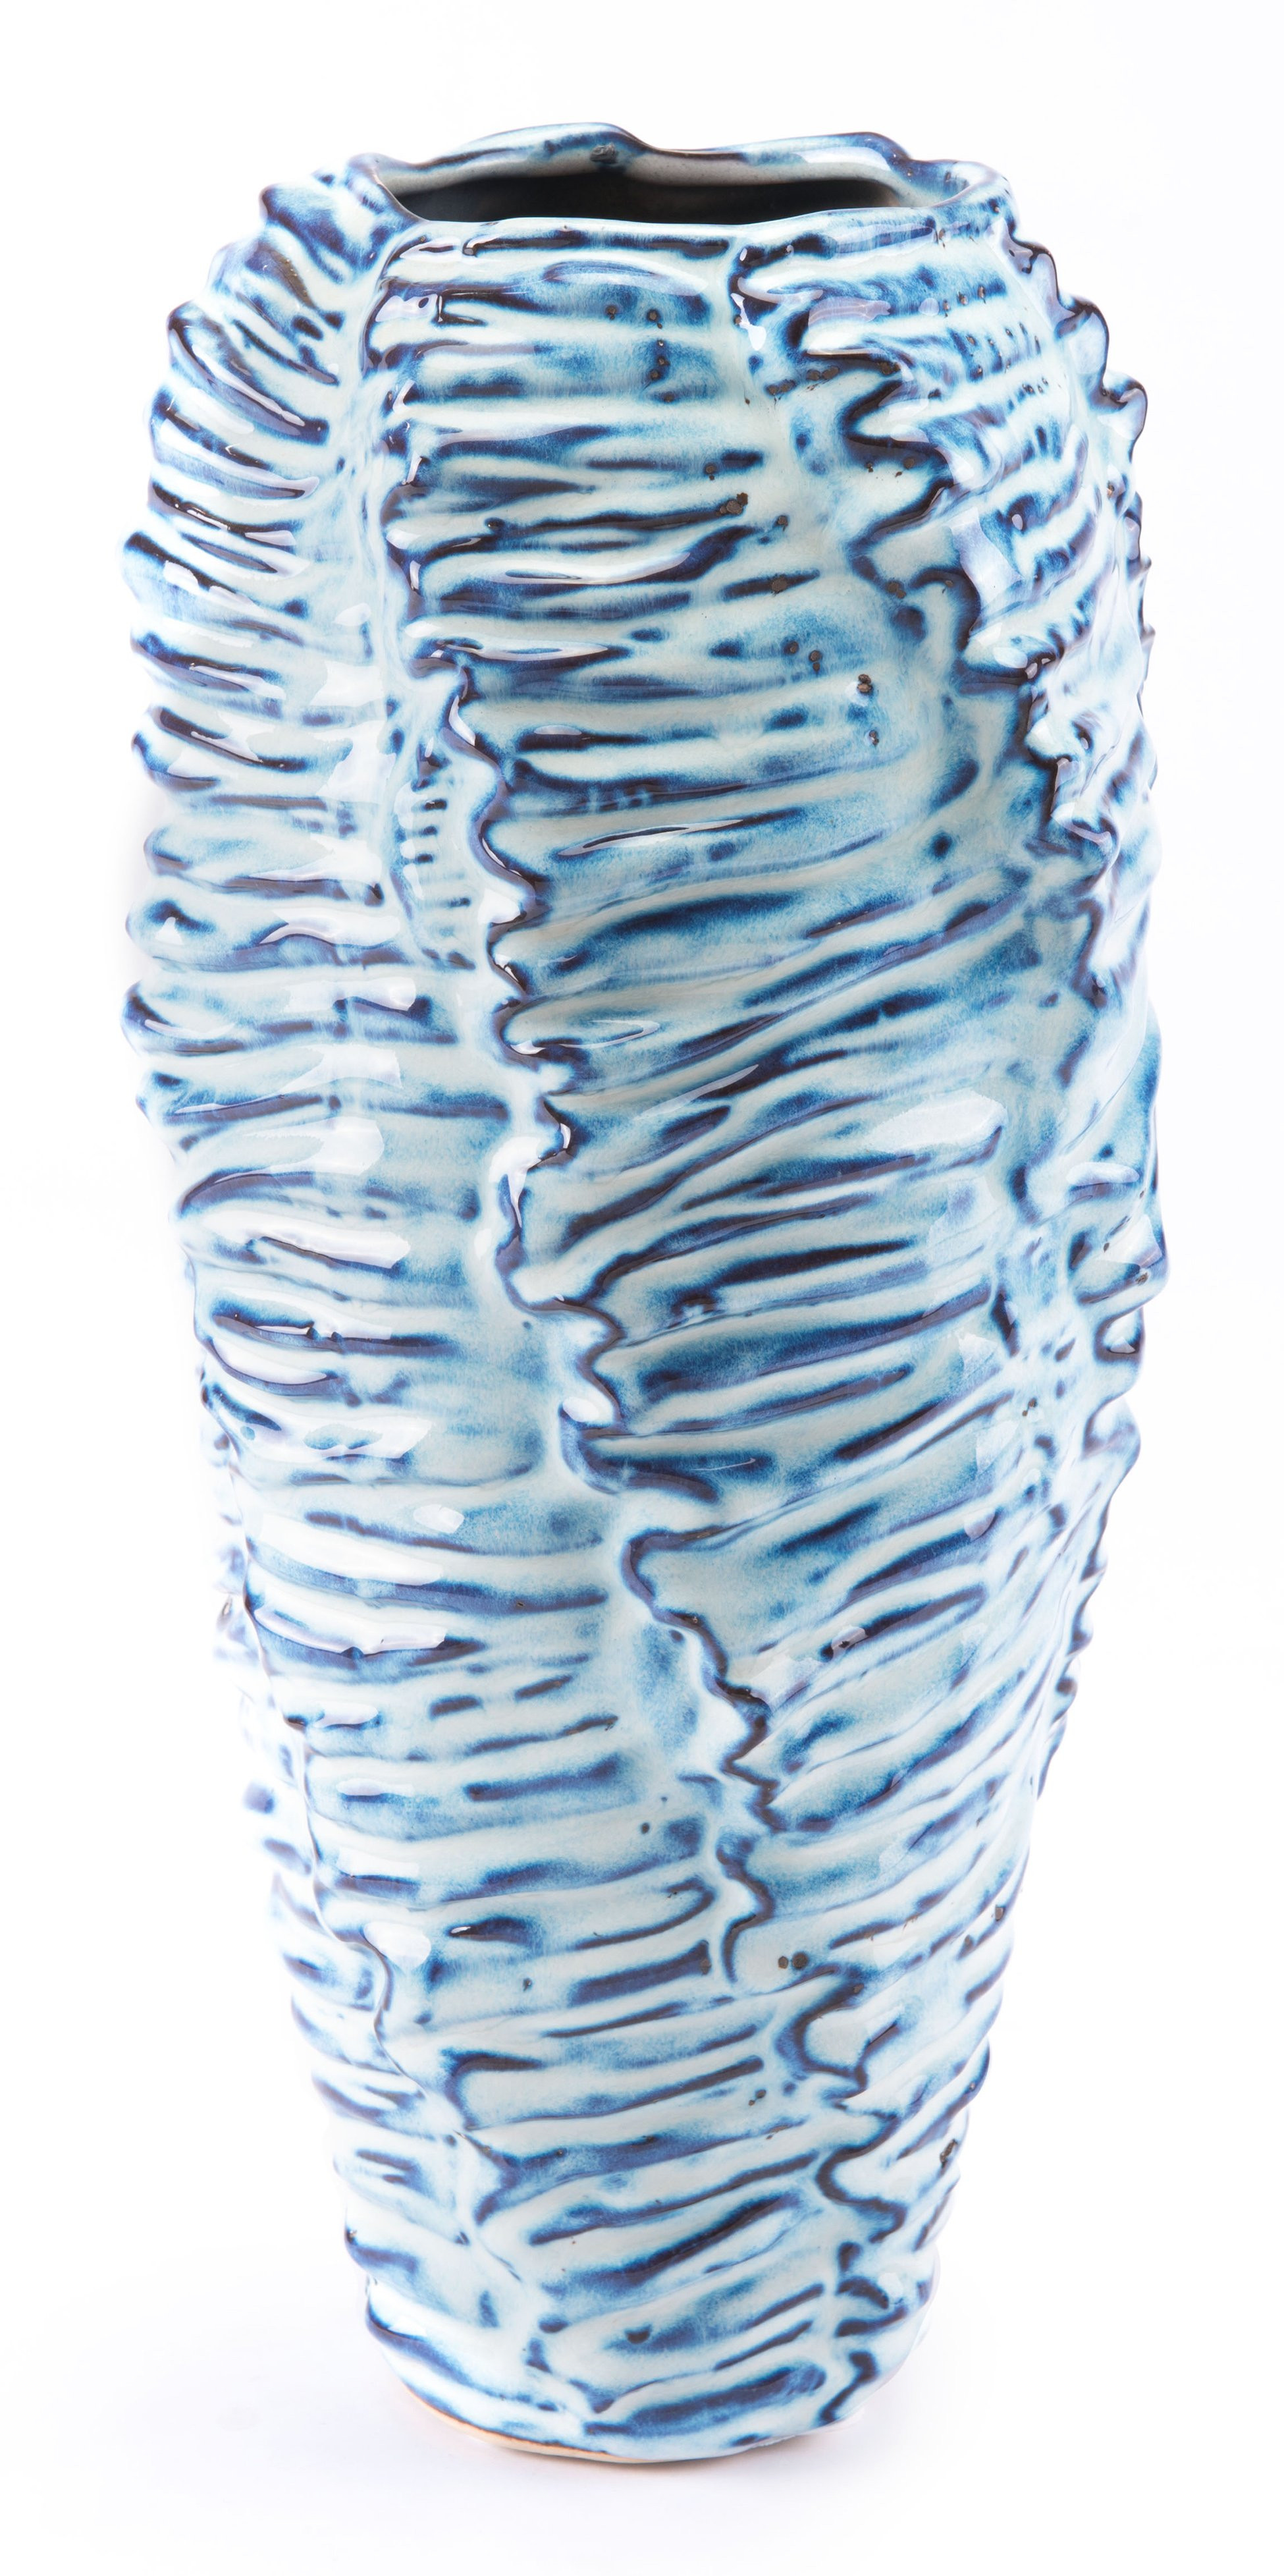 blue white floor vase of mar tall vase products pinterest tall vases and products regarding mar tall vase